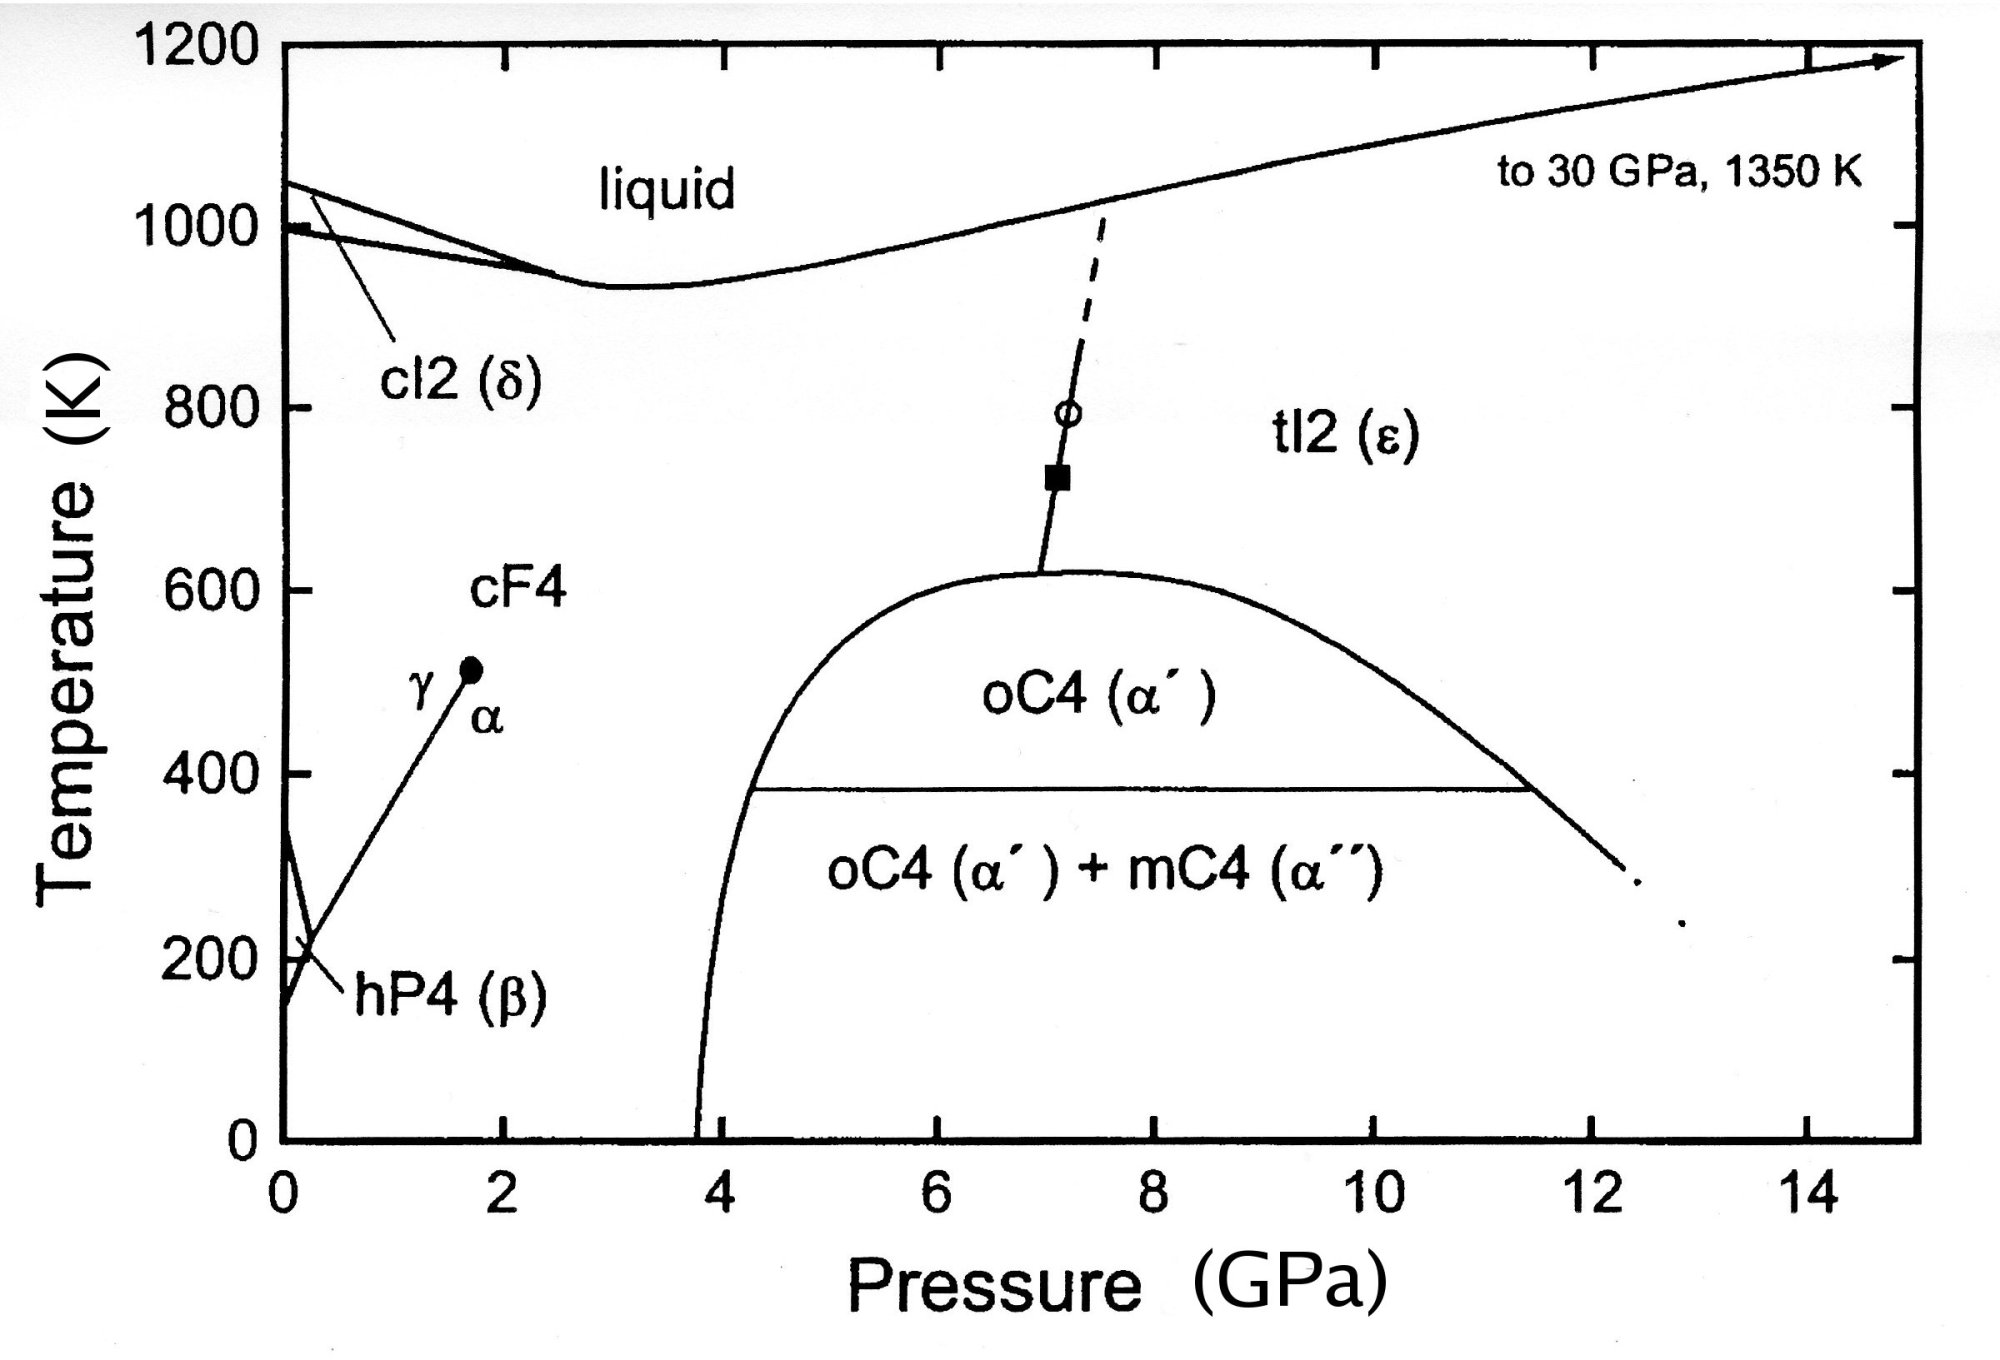 hight resolution of file cerium phase diagram jpg